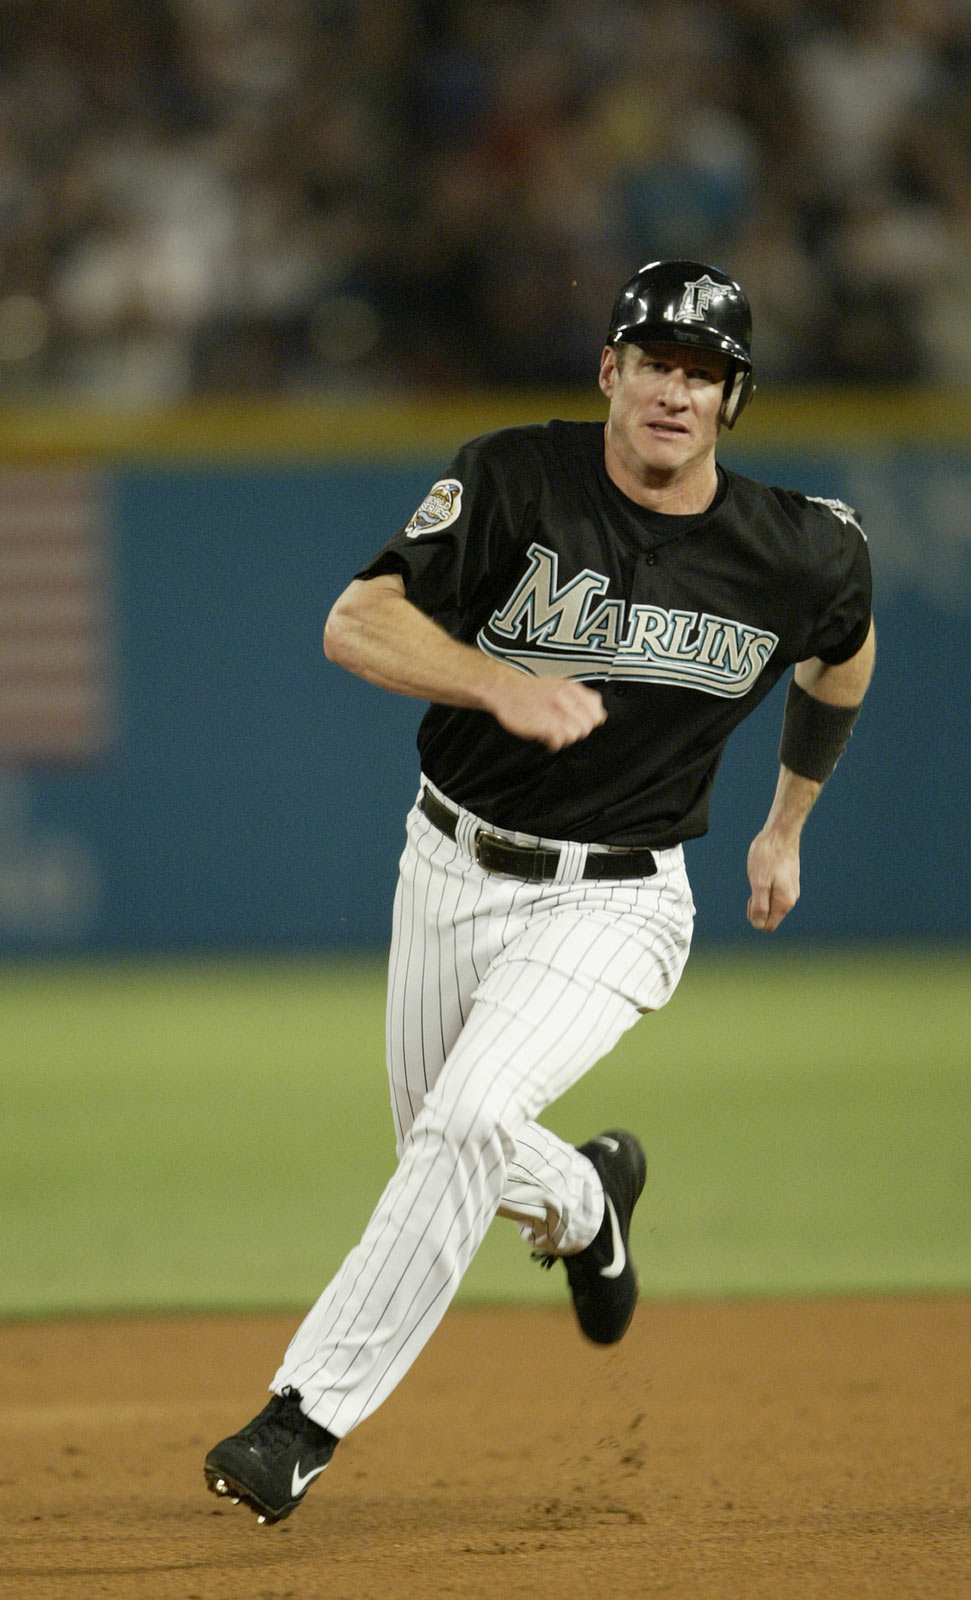 Jeff Conine Top 9 Reasons Why Jeff Conine is Mr Marlin On Cloud Conine